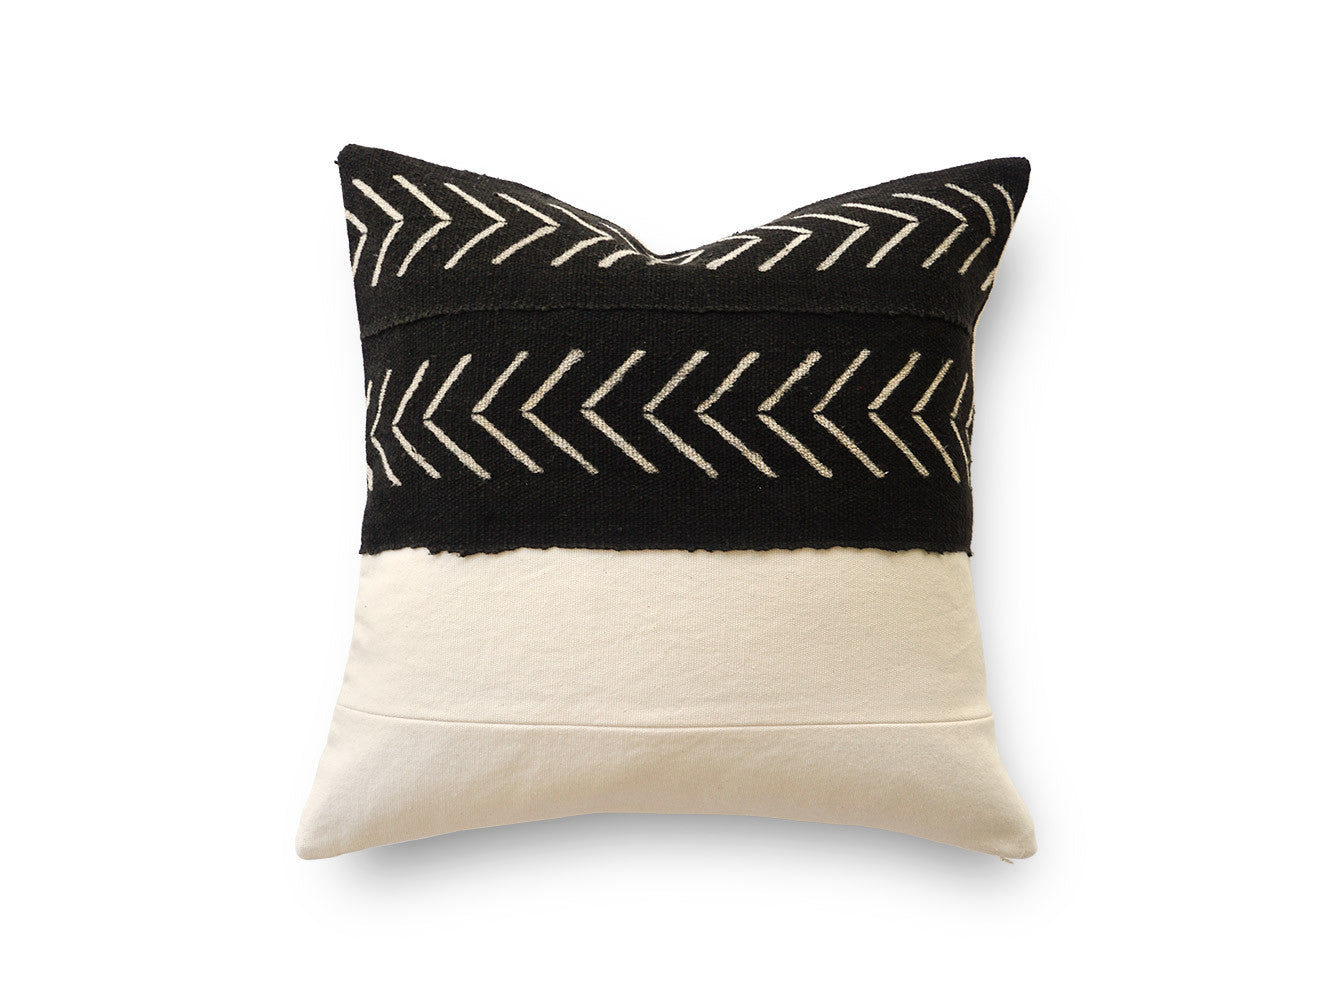 BLACK MUDCLOTH CUSHION COVER (20x20)